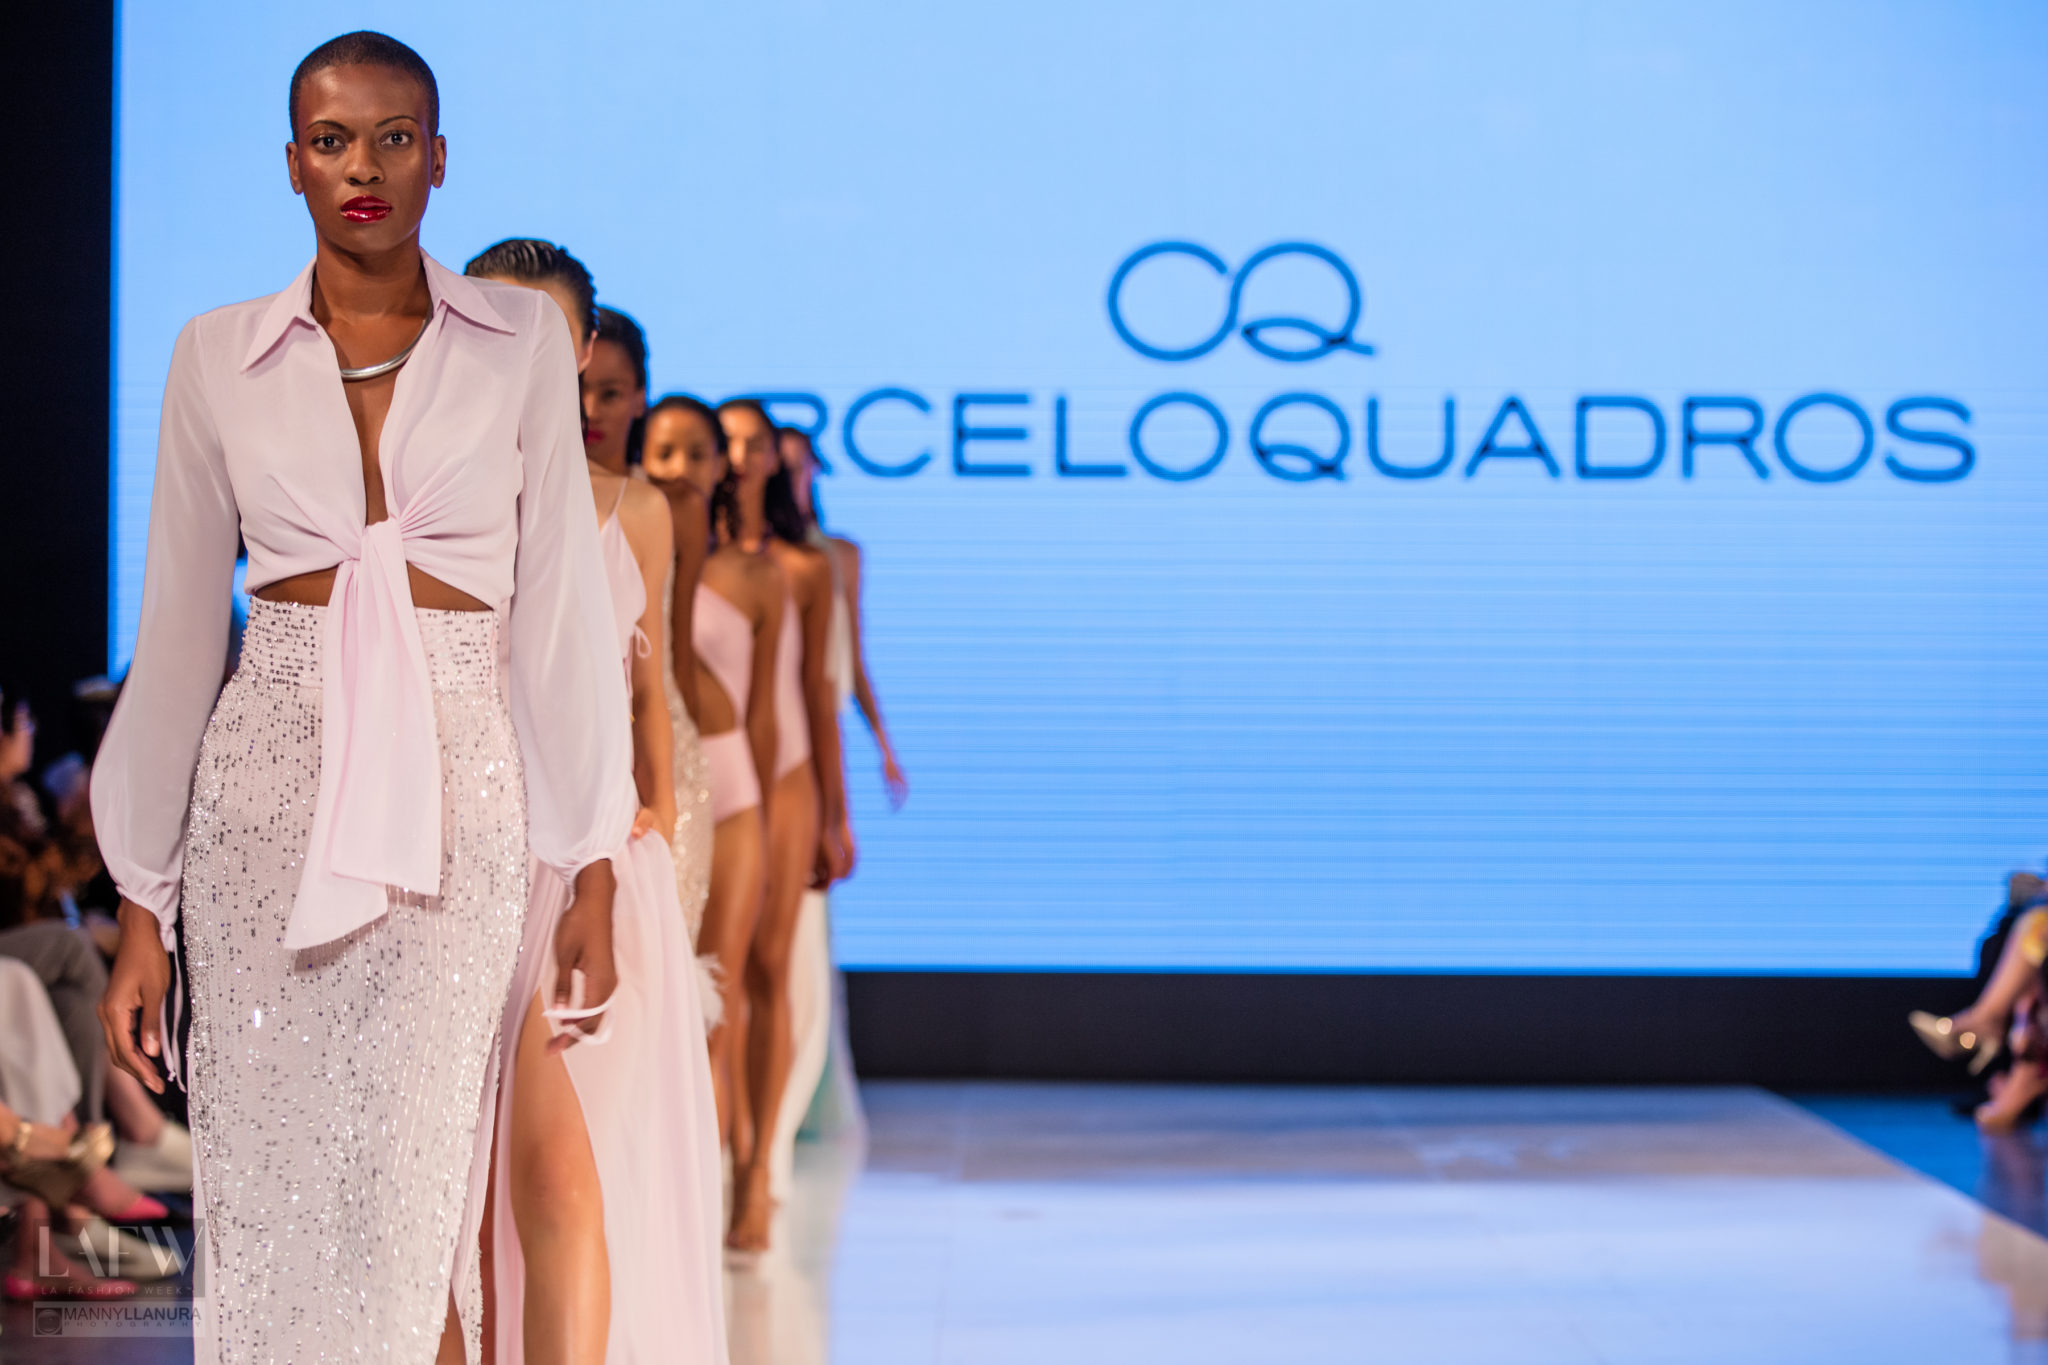 Models walk the runway wearing Marcelo Quadros at LAFW Los Angeles Fashion Week SS17